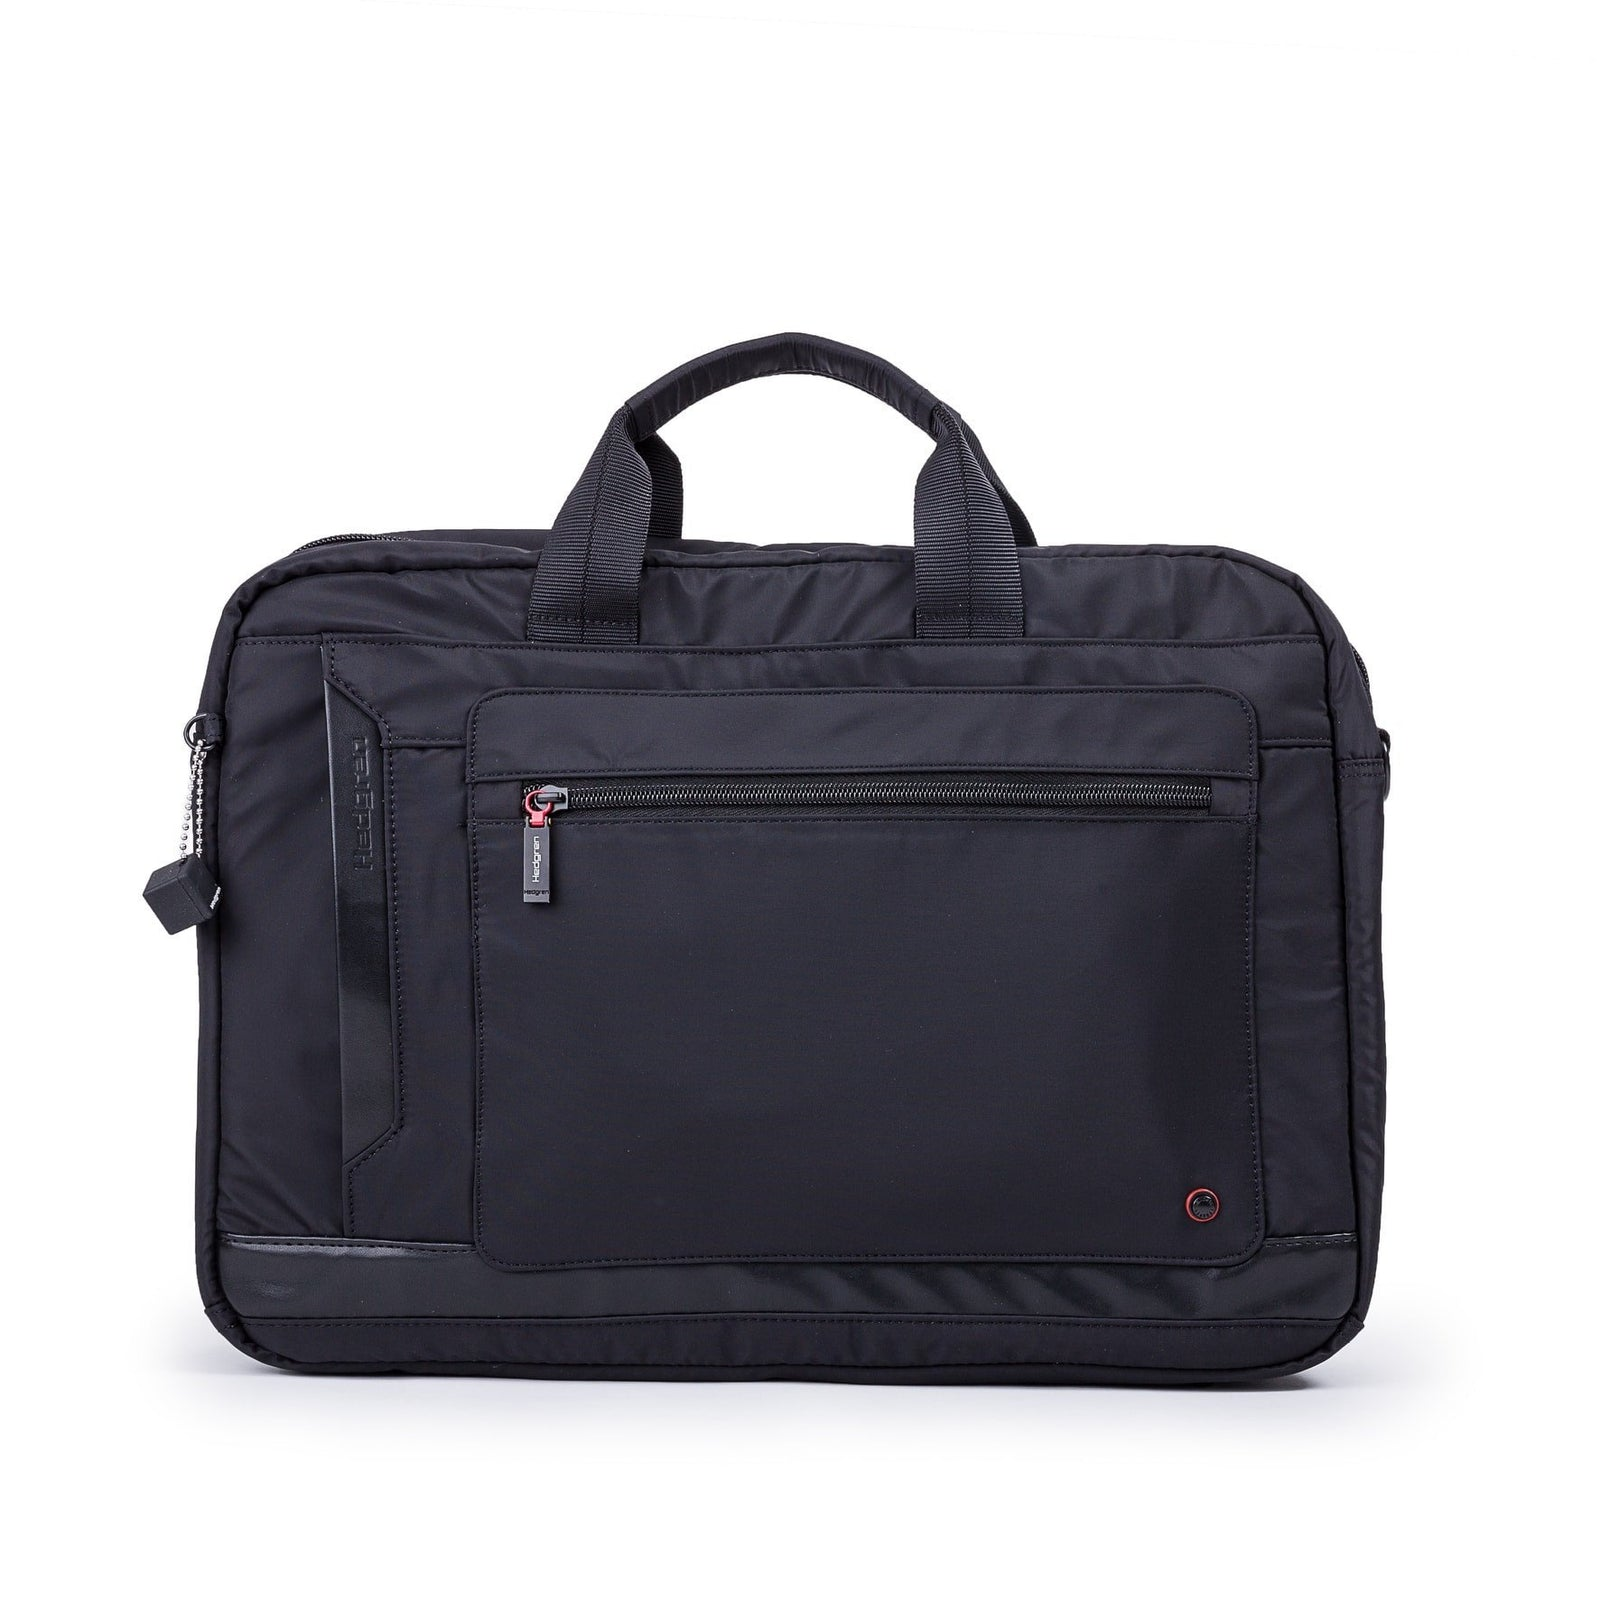 "Hedgren Zeppelin Revised Business Bag 15.6"" EXPEDITE"